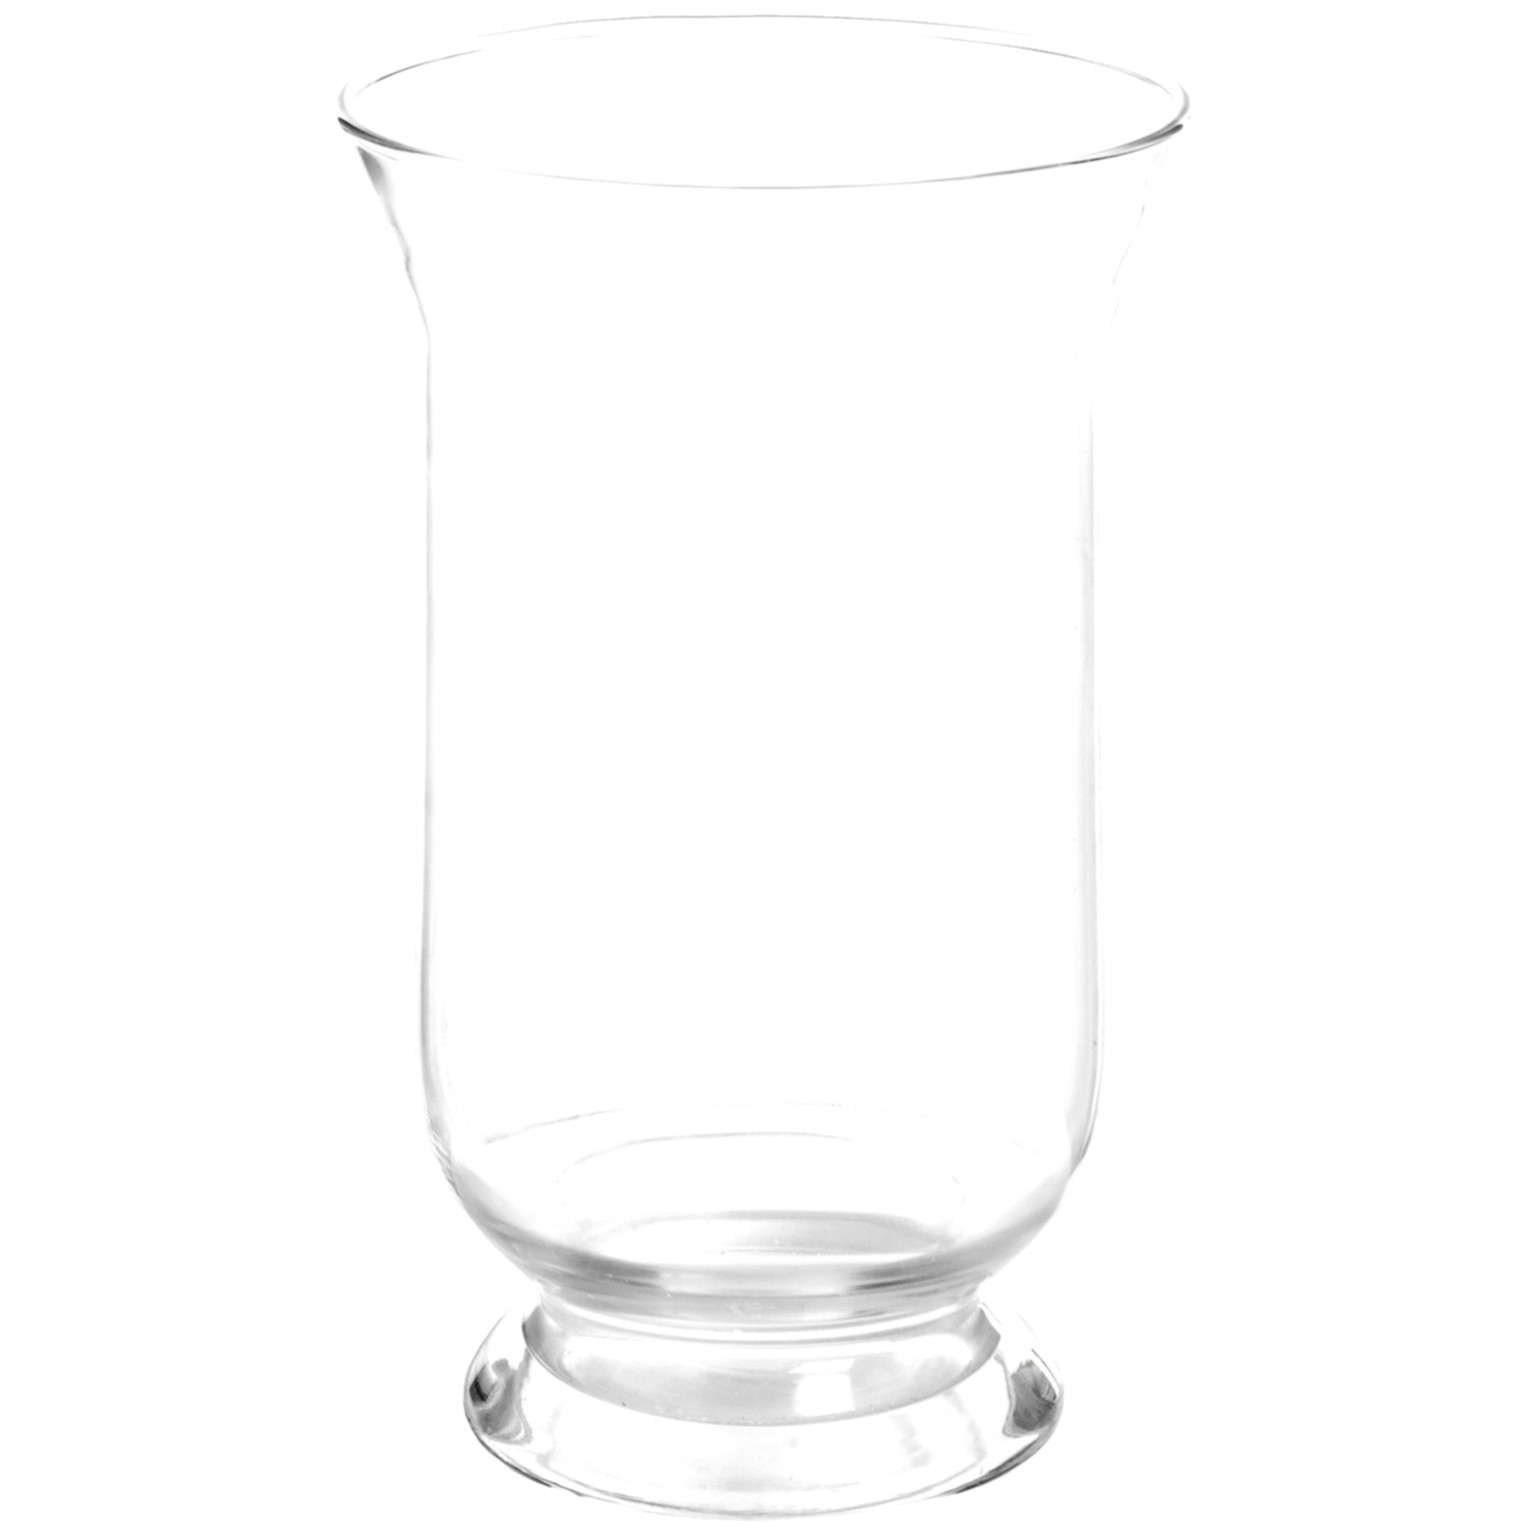 glass flower vases wholesale of why you should not go to glass vases wholesale glass vases regarding large hurricane vases wholesale glass vases wholesale